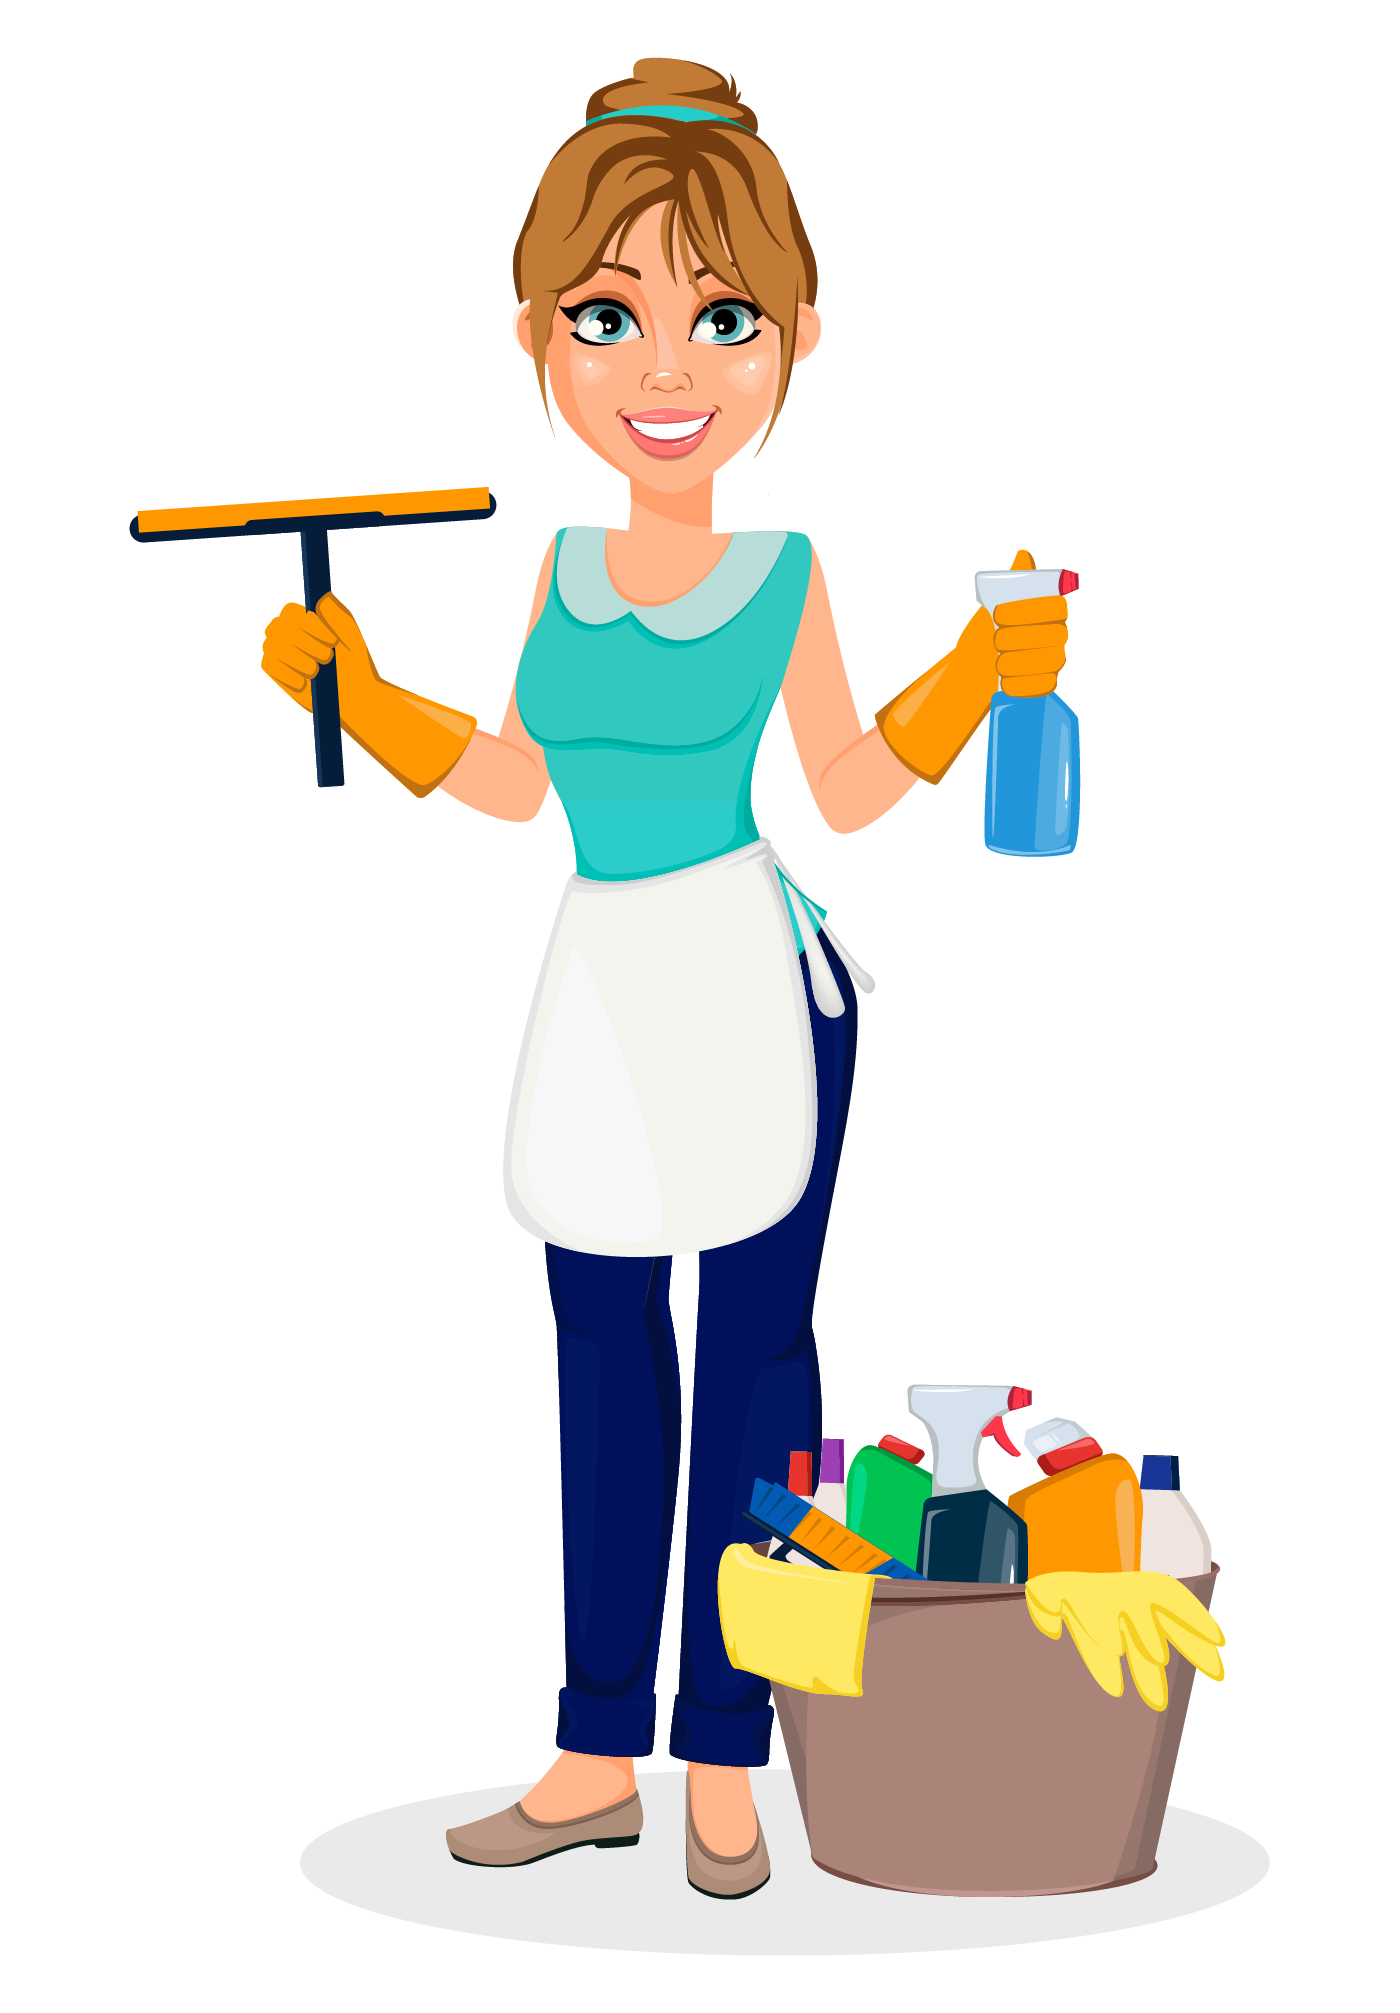 Home Cleaning Service in Frisco, Allen, McKinney, Plano, TX